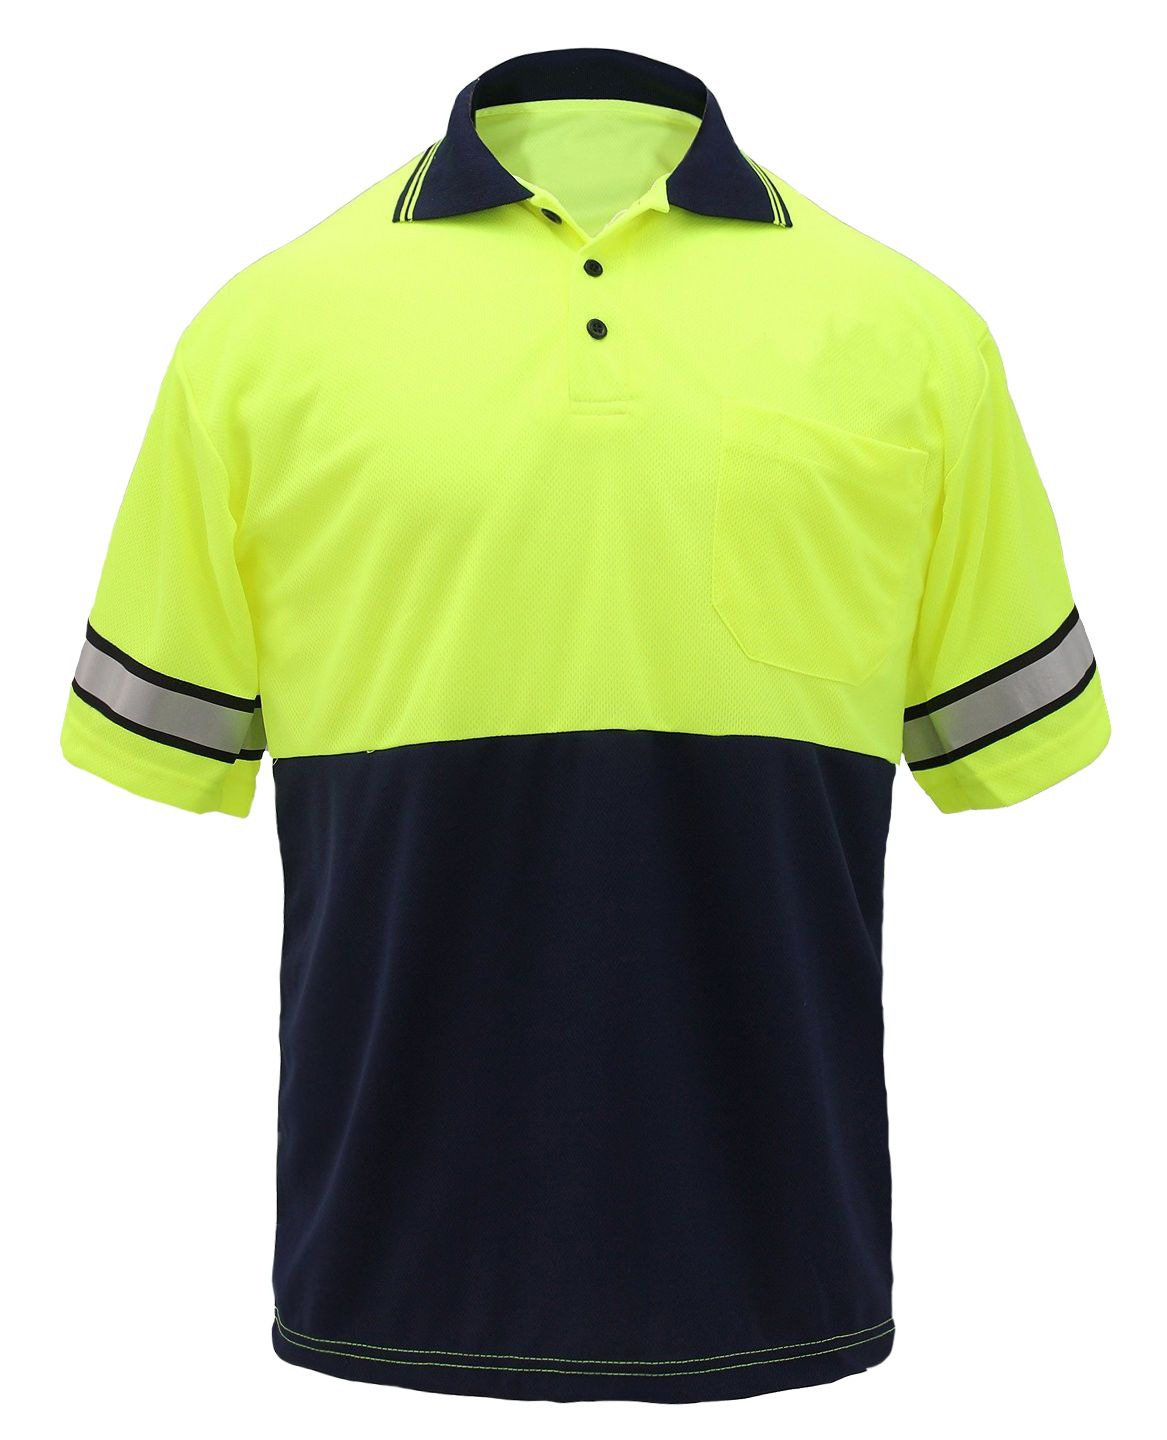 High Visability Two Tone Polo Shirt w/Reflective Stripes-First Class